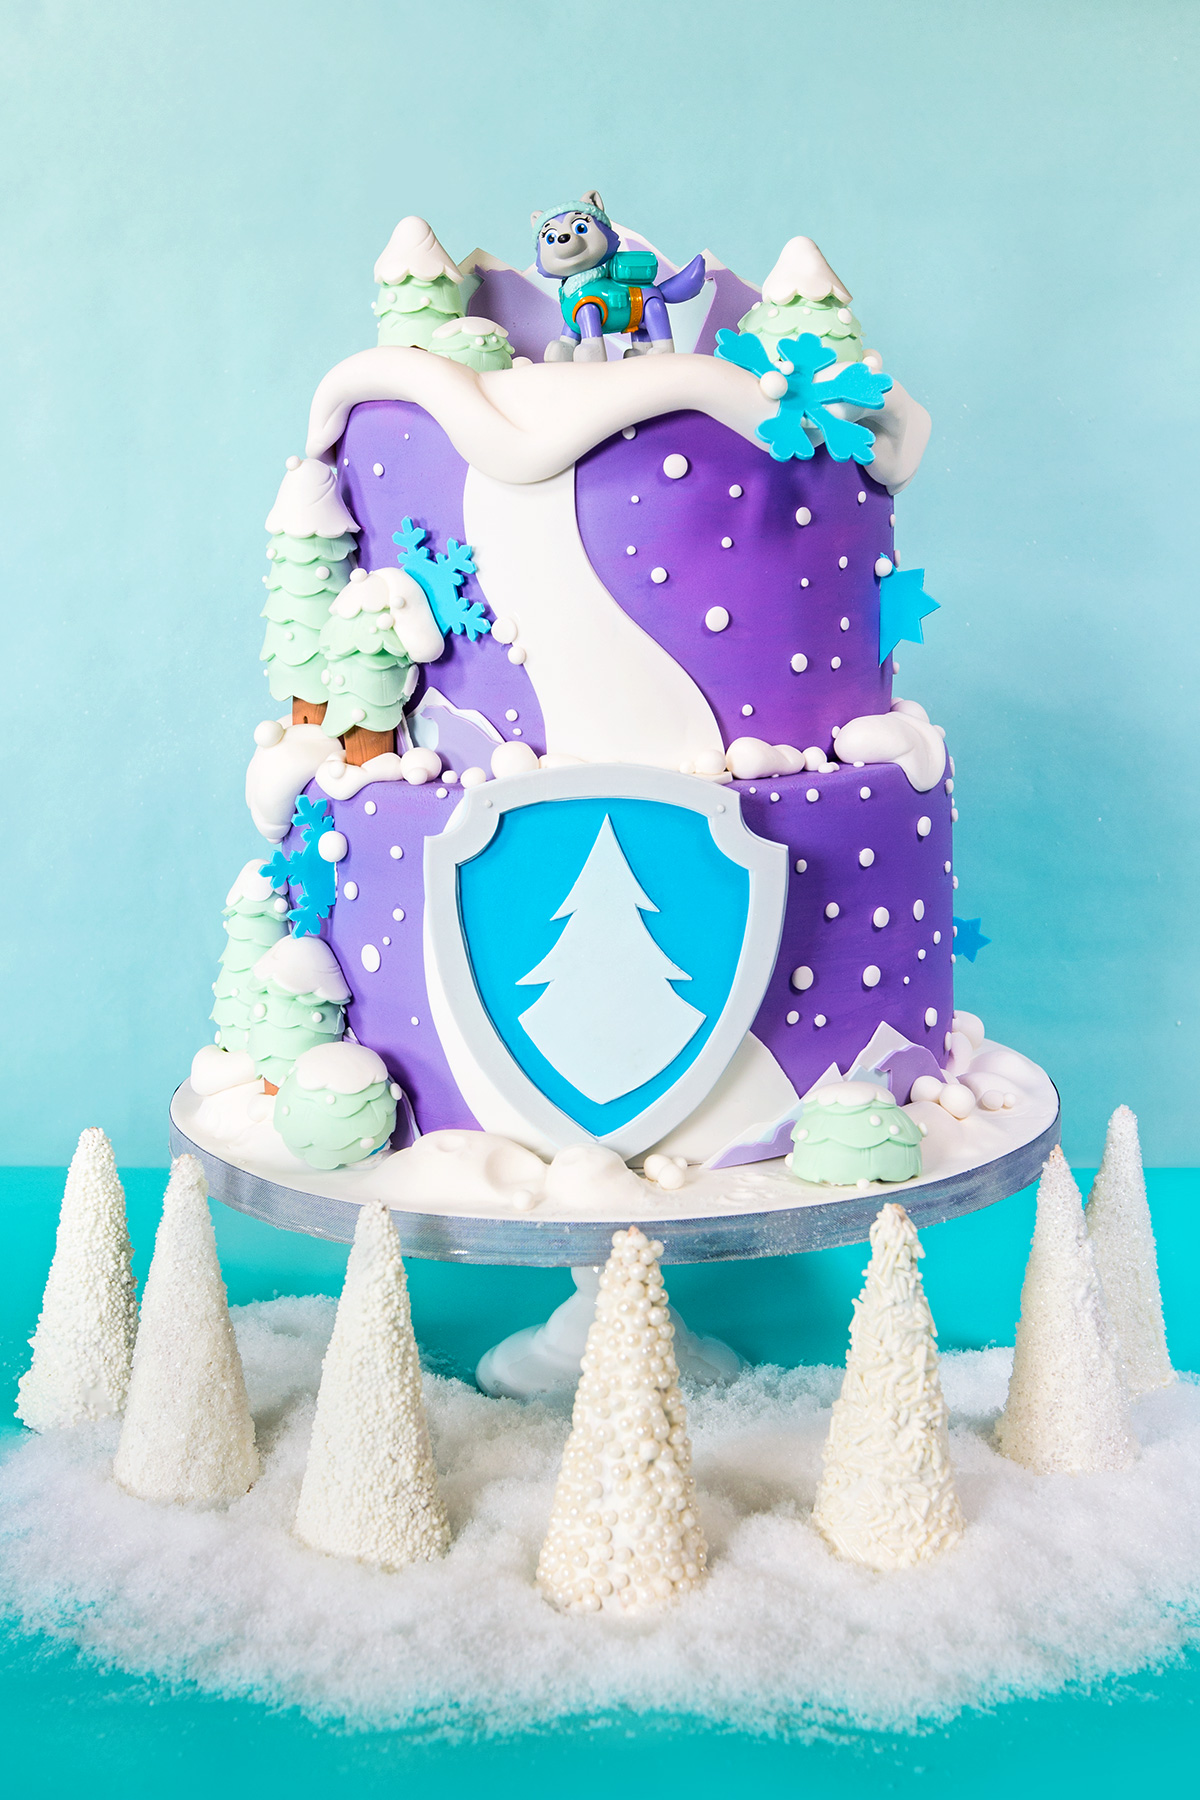 Everest Winter Wonderland Birthday Cake